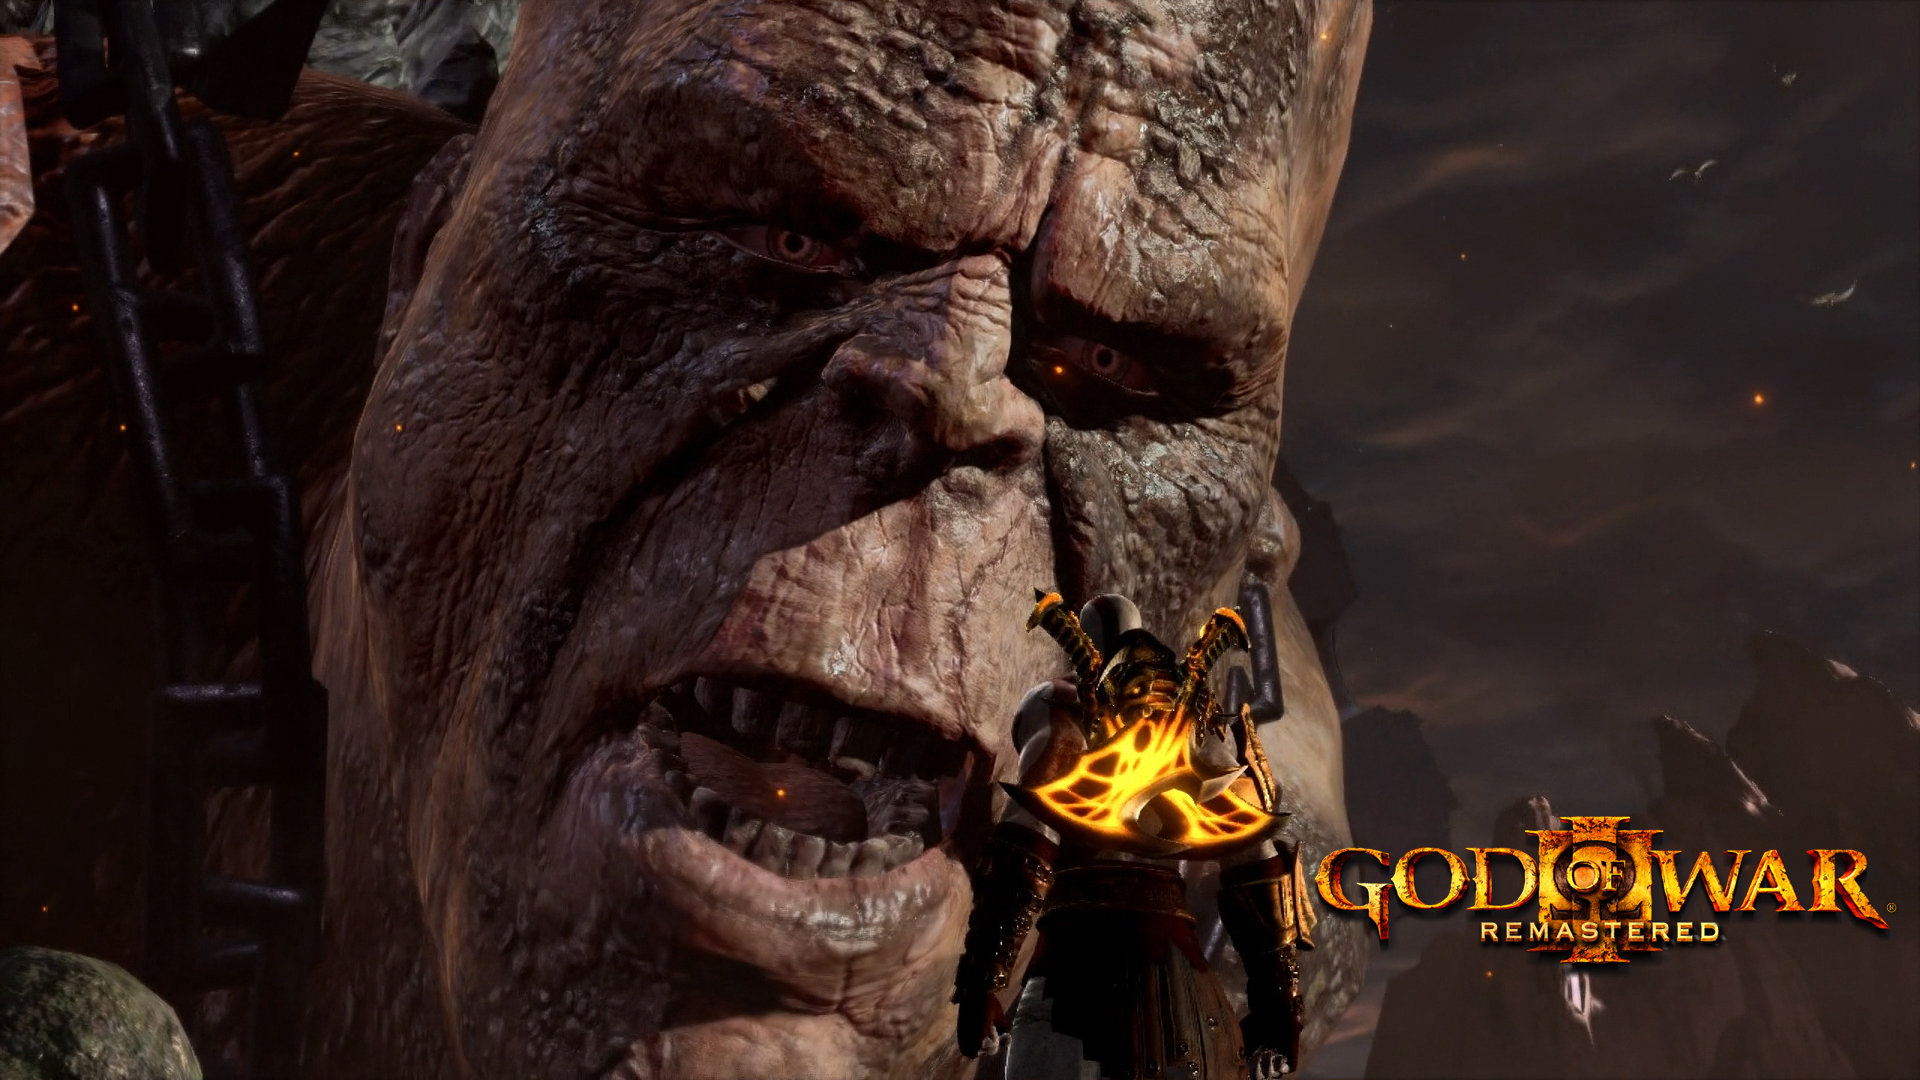 god-of-war-iii-remastered-screen-03-ps4-us-13mar15 (1920×1080)